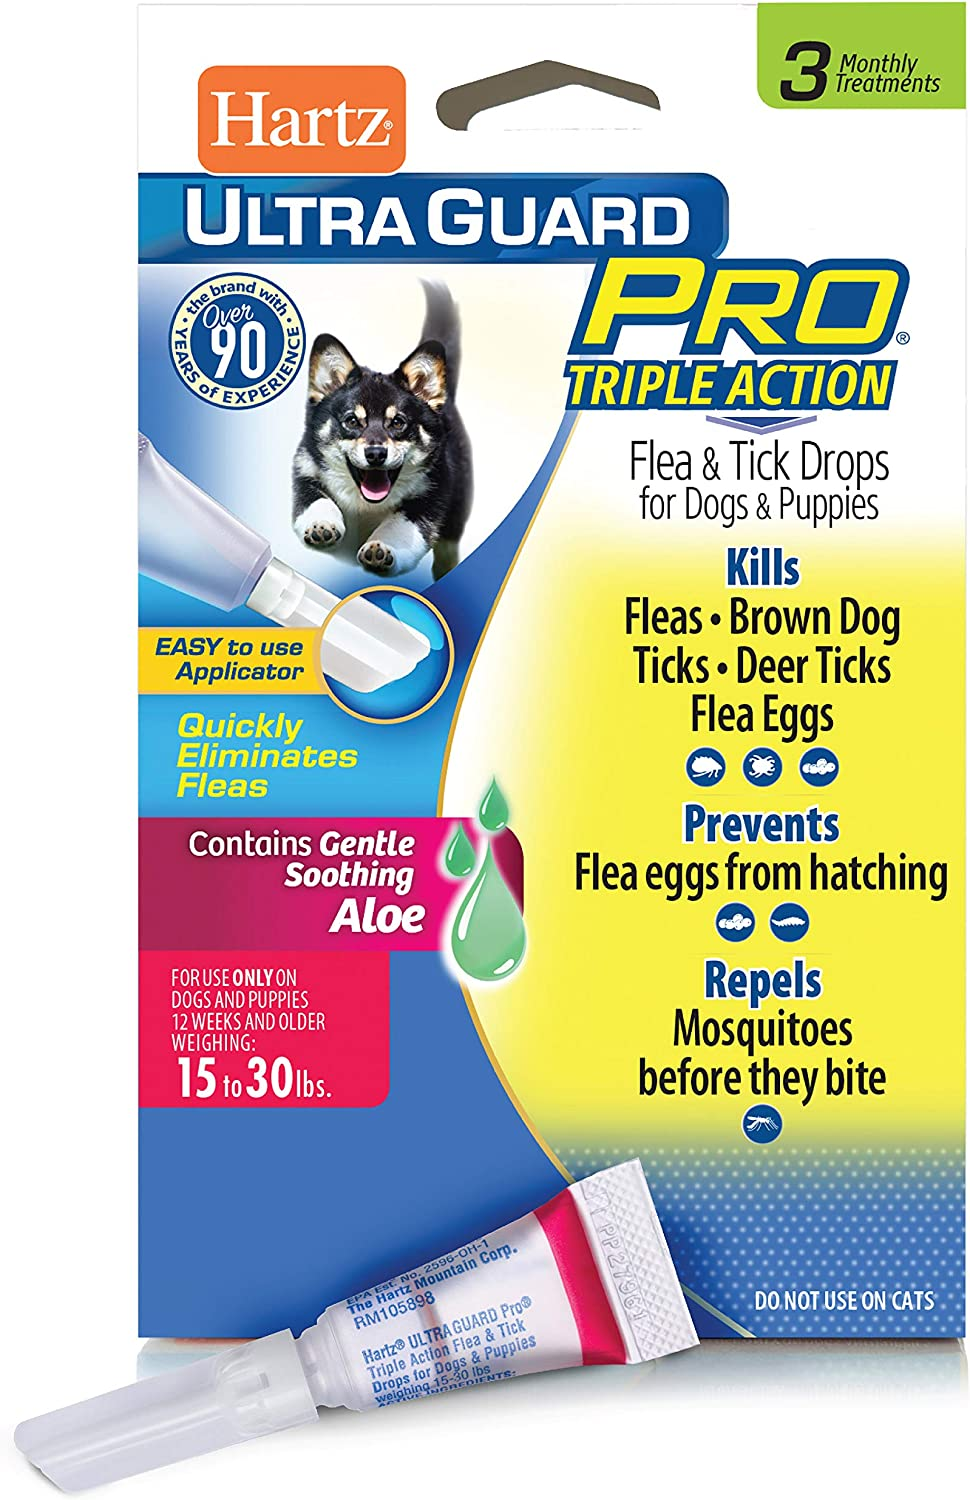 Hartz UltraGuard Pro Topical Flea & Tick Prevention for Dogs and Puppies - 15-30 lbs, 3 Monthly Treatments